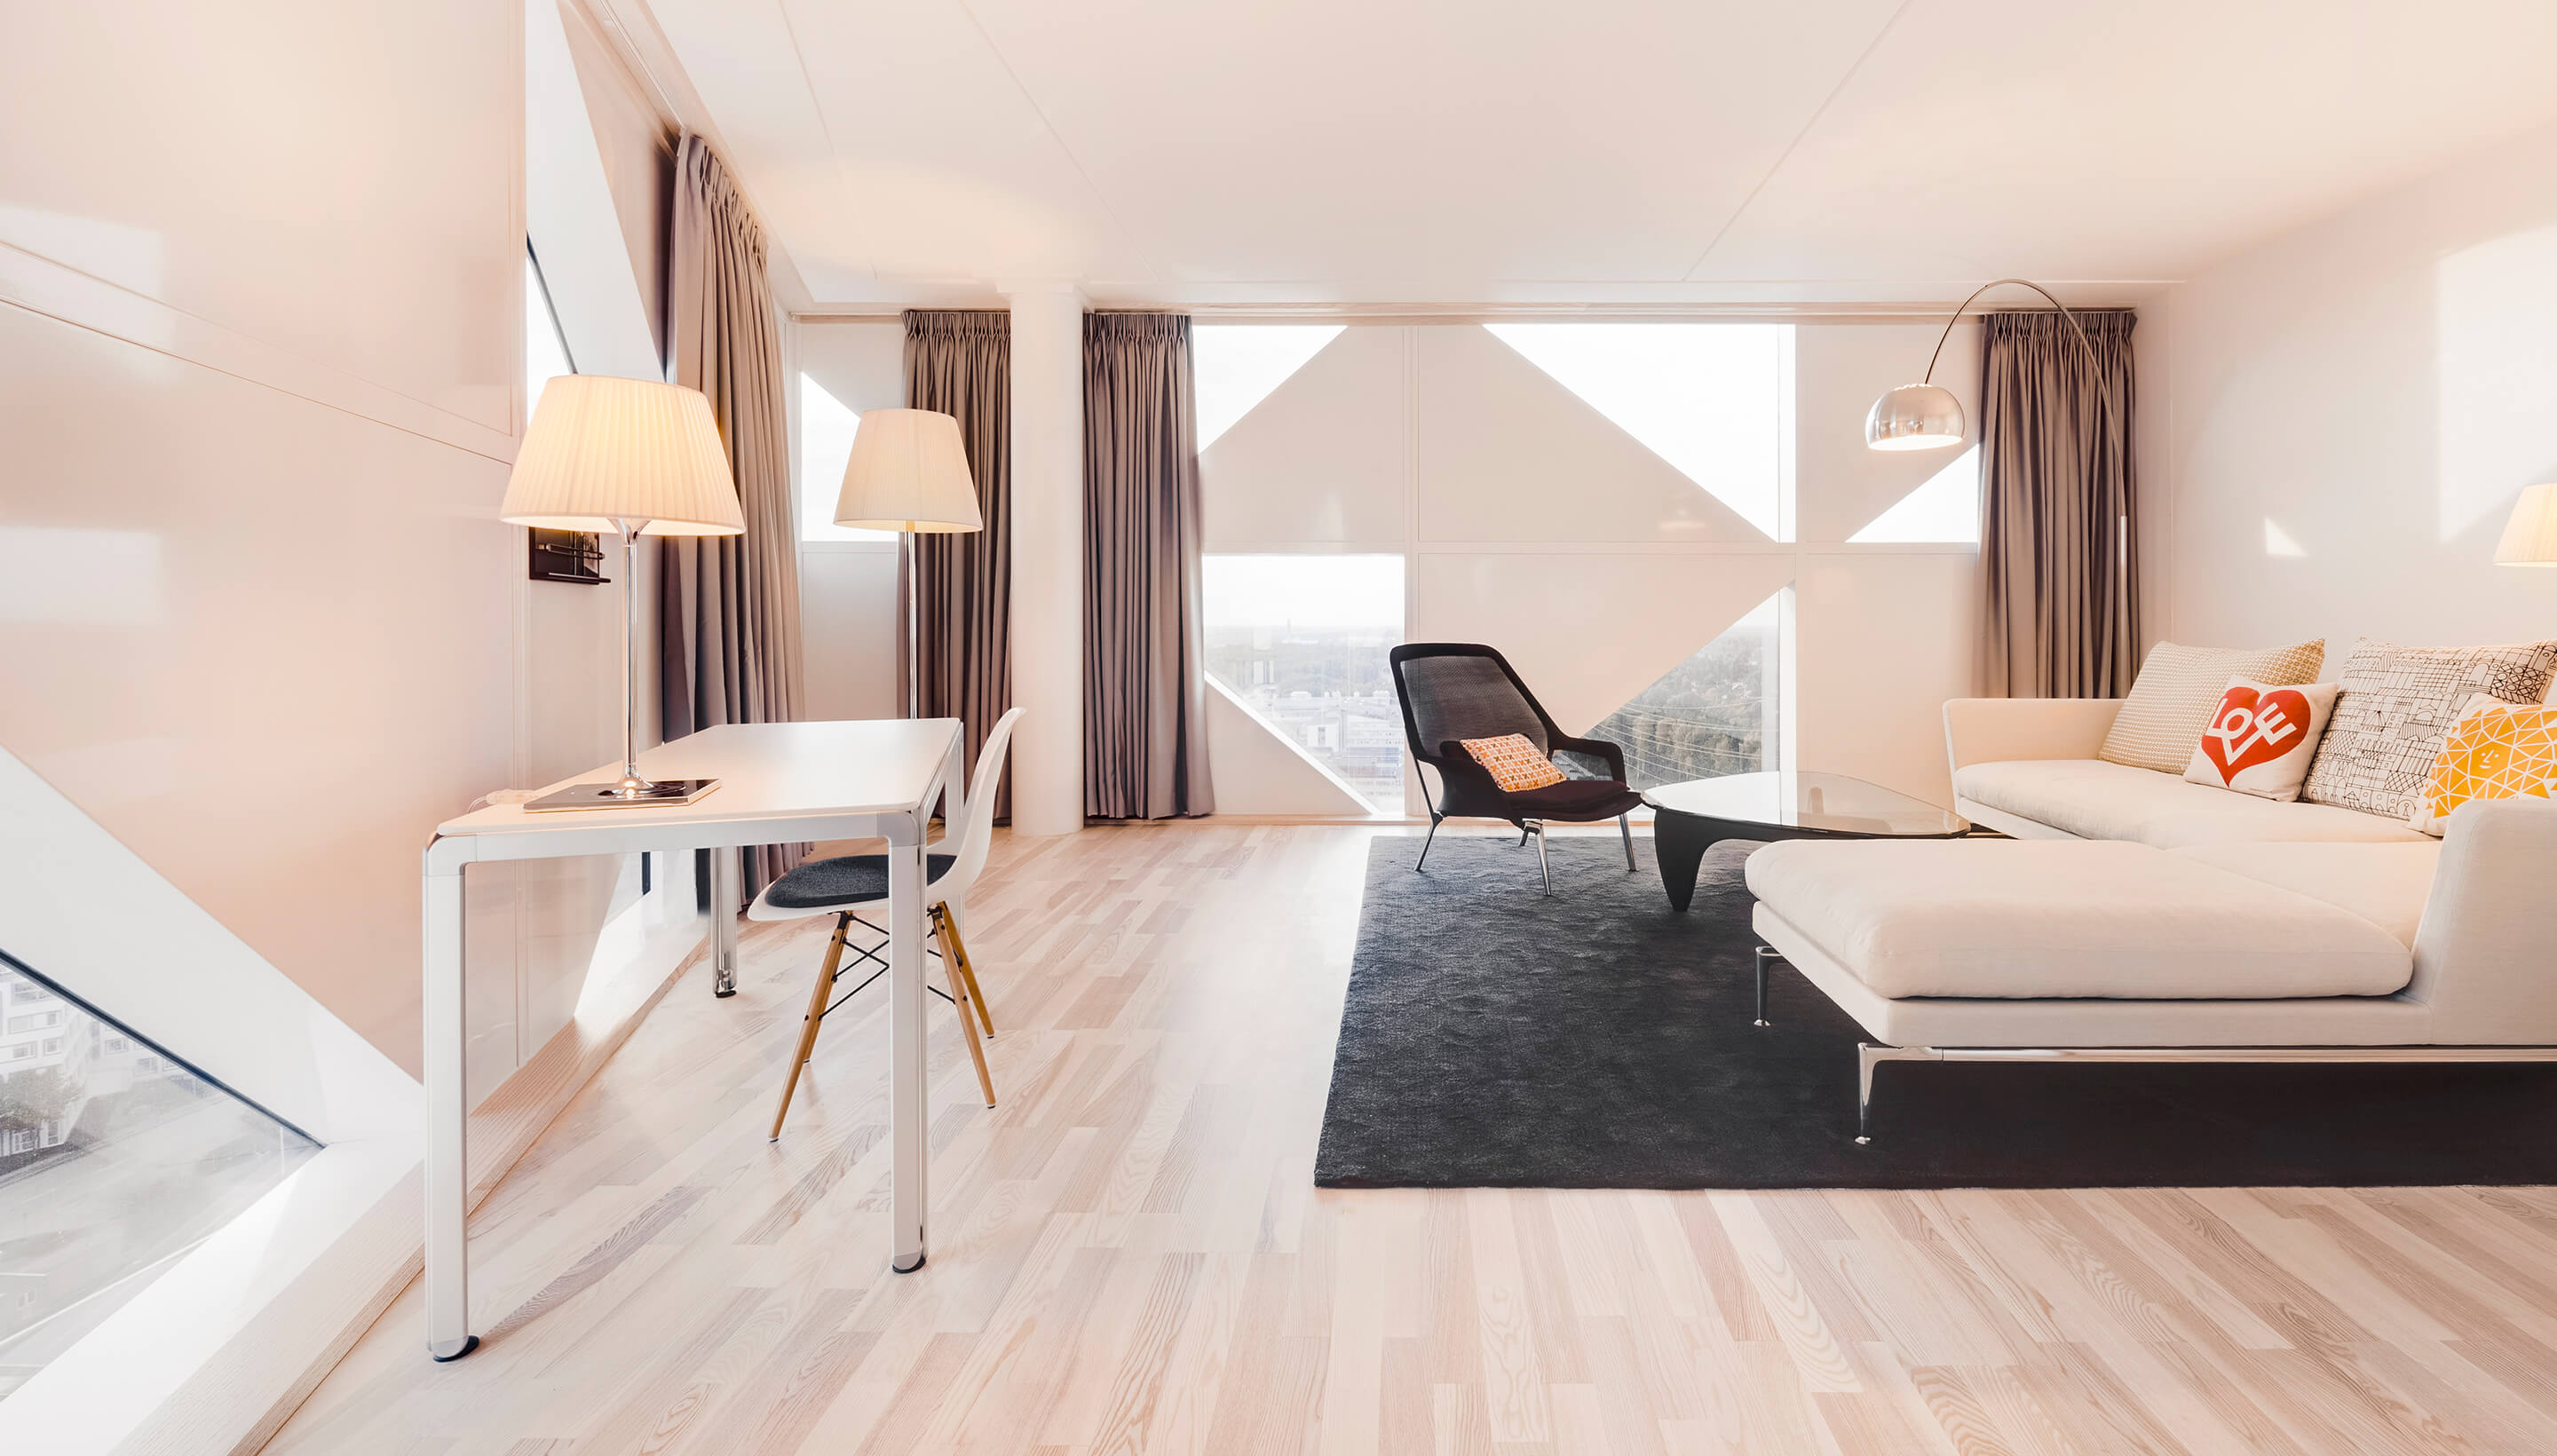 Vitra Eames Kussen : Vitra poltrona eames vitra eames la chaise chair by charles and